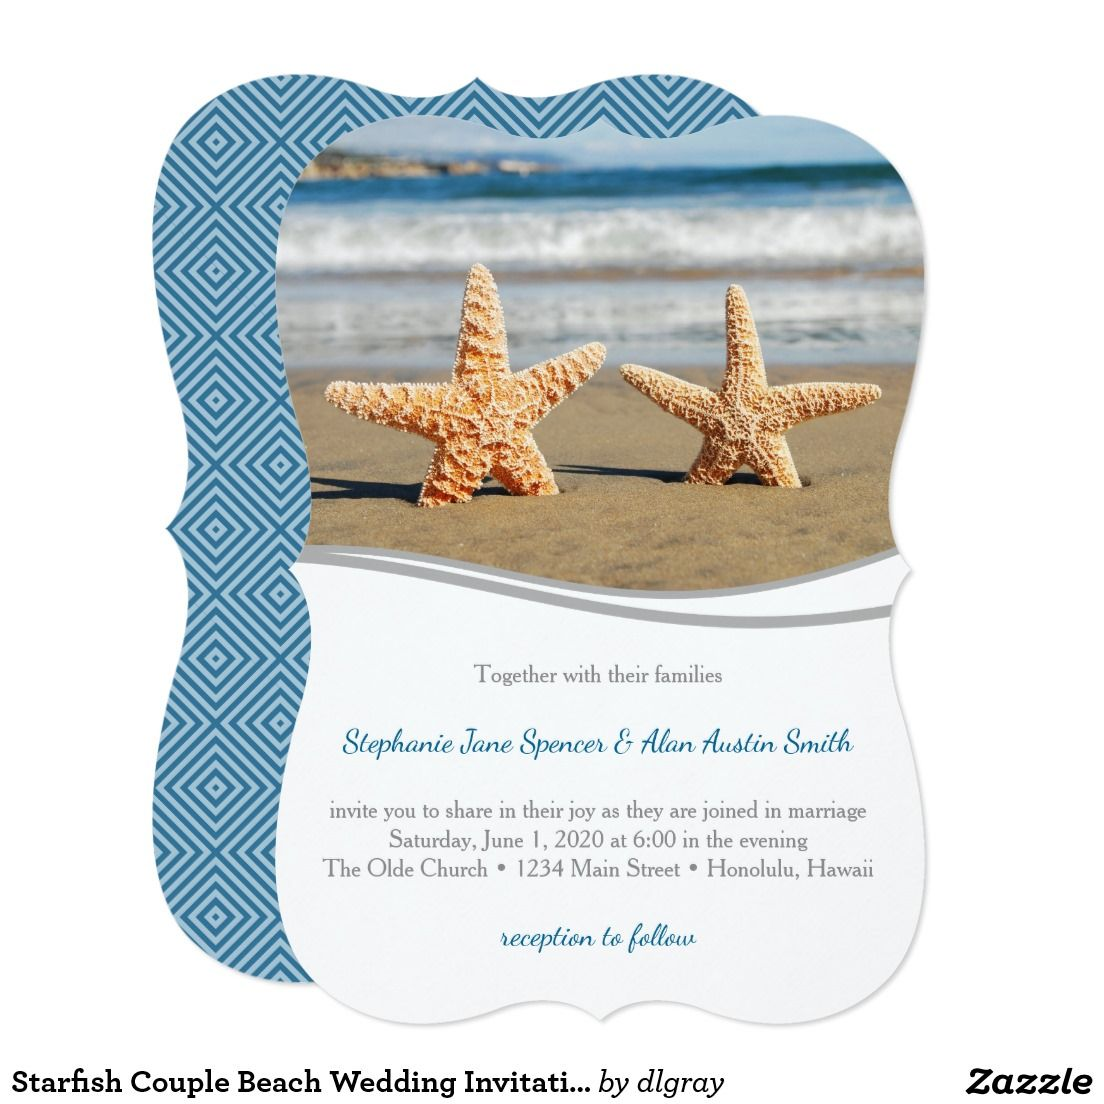 Starfish Couple Beach Wedding Invitation A Starfish Couple Posing On